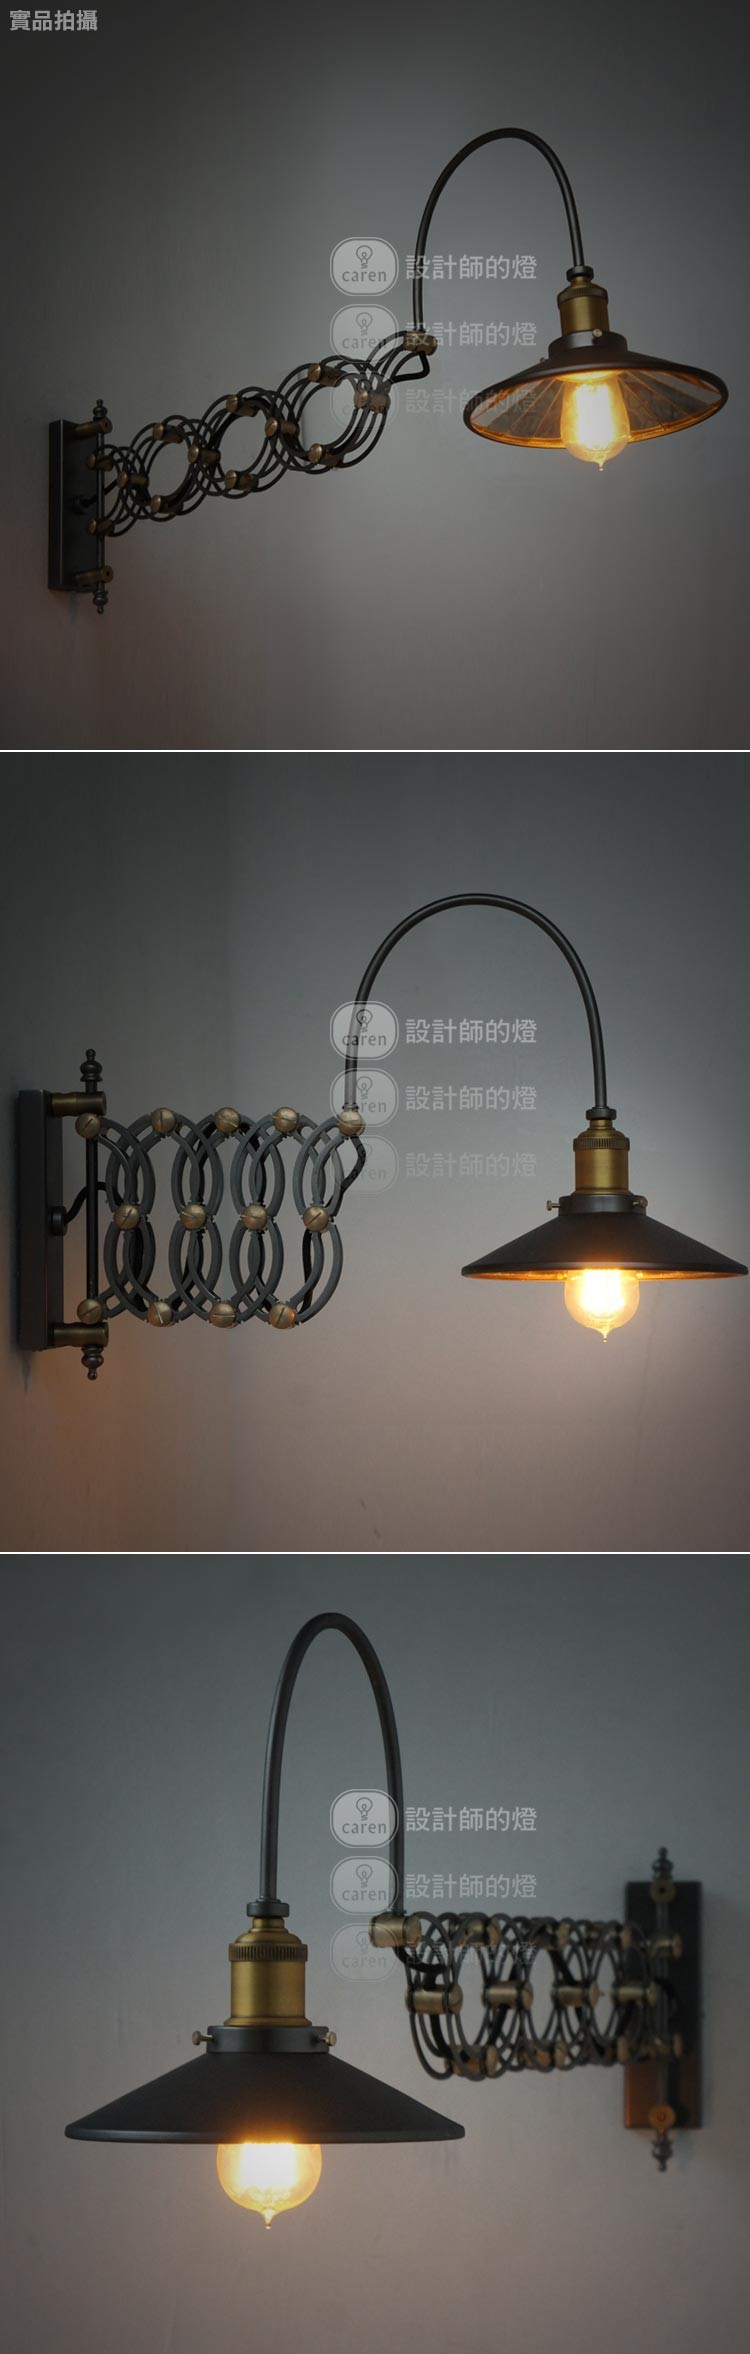 New Loft RH Vintage Fashion Retractable black iron lamps Wall Lamp Bedroom Study Wall Lighting Free Shipping (2)